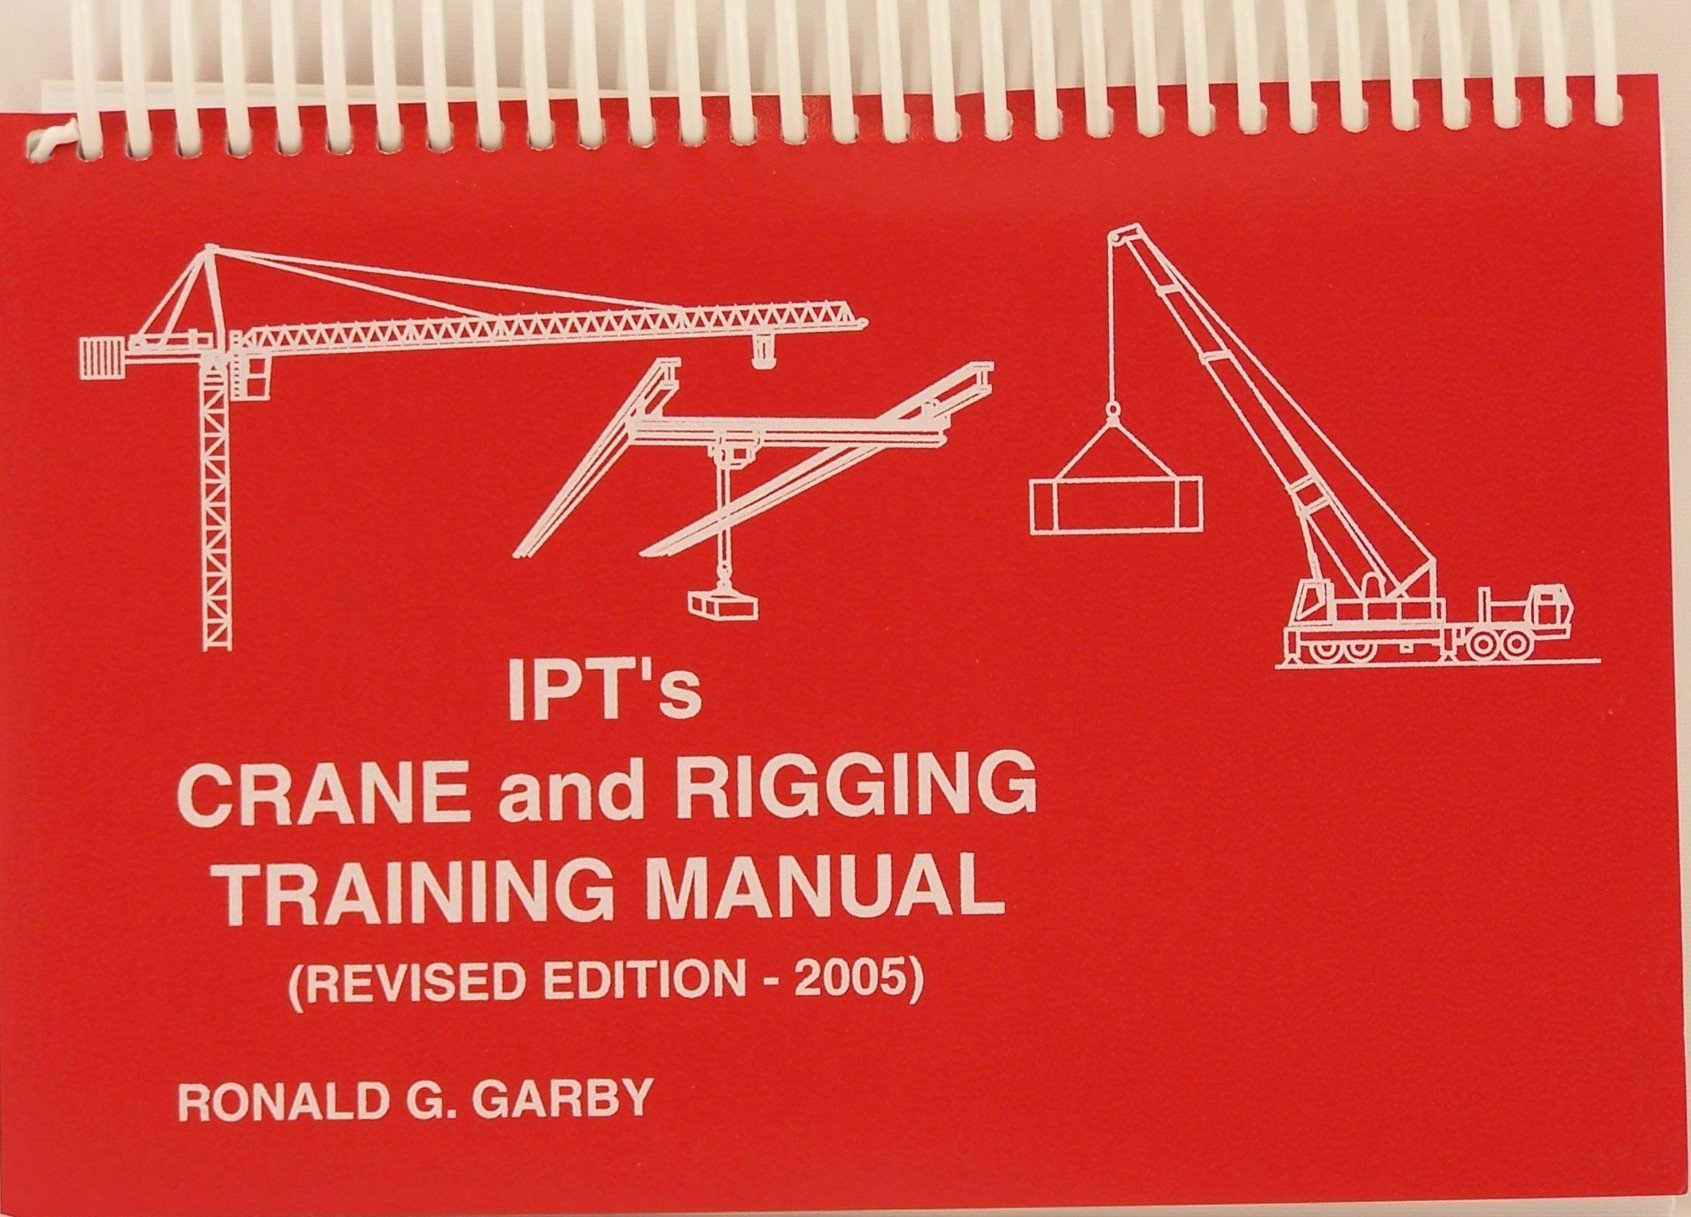 Ipts crane and rigging training manual 2005 edition ronald g garby ipts crane and rigging training manual 2005 edition ronald g garby 9780920855034 amazon books fandeluxe Gallery